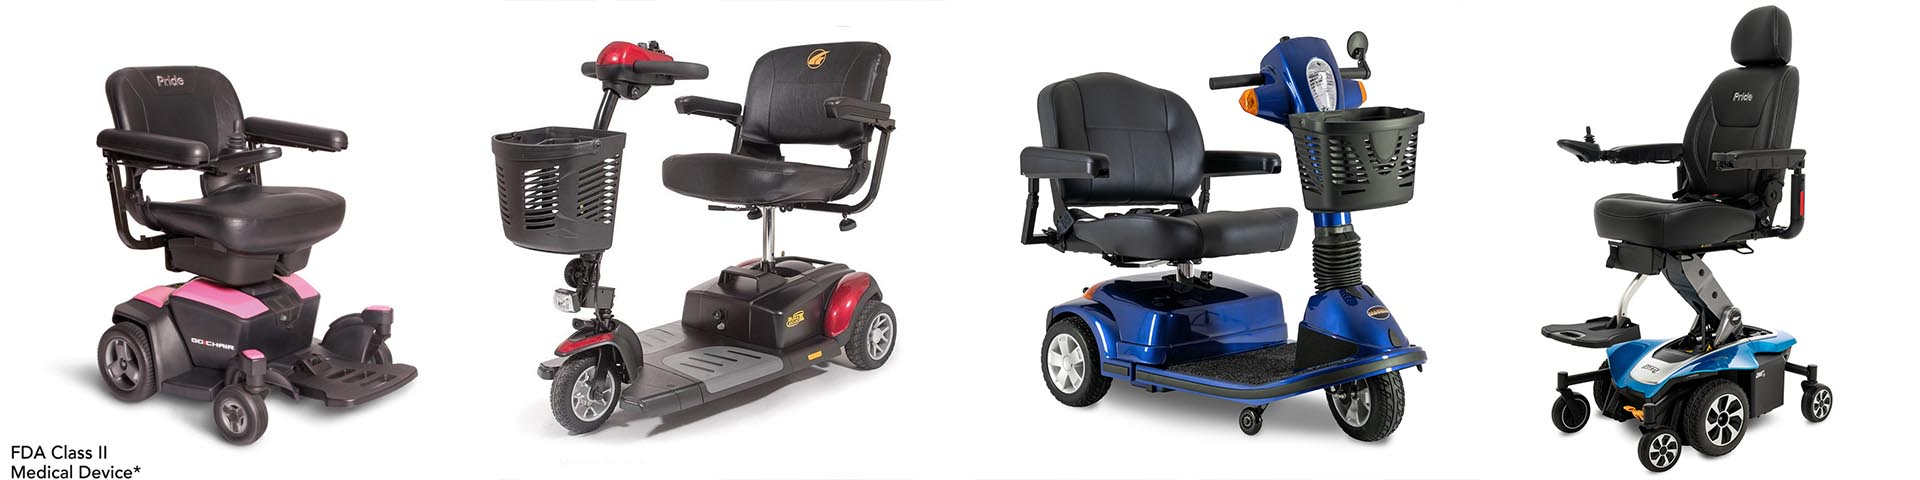 mobility-scooters-medical-scooters-power-wheelchairs